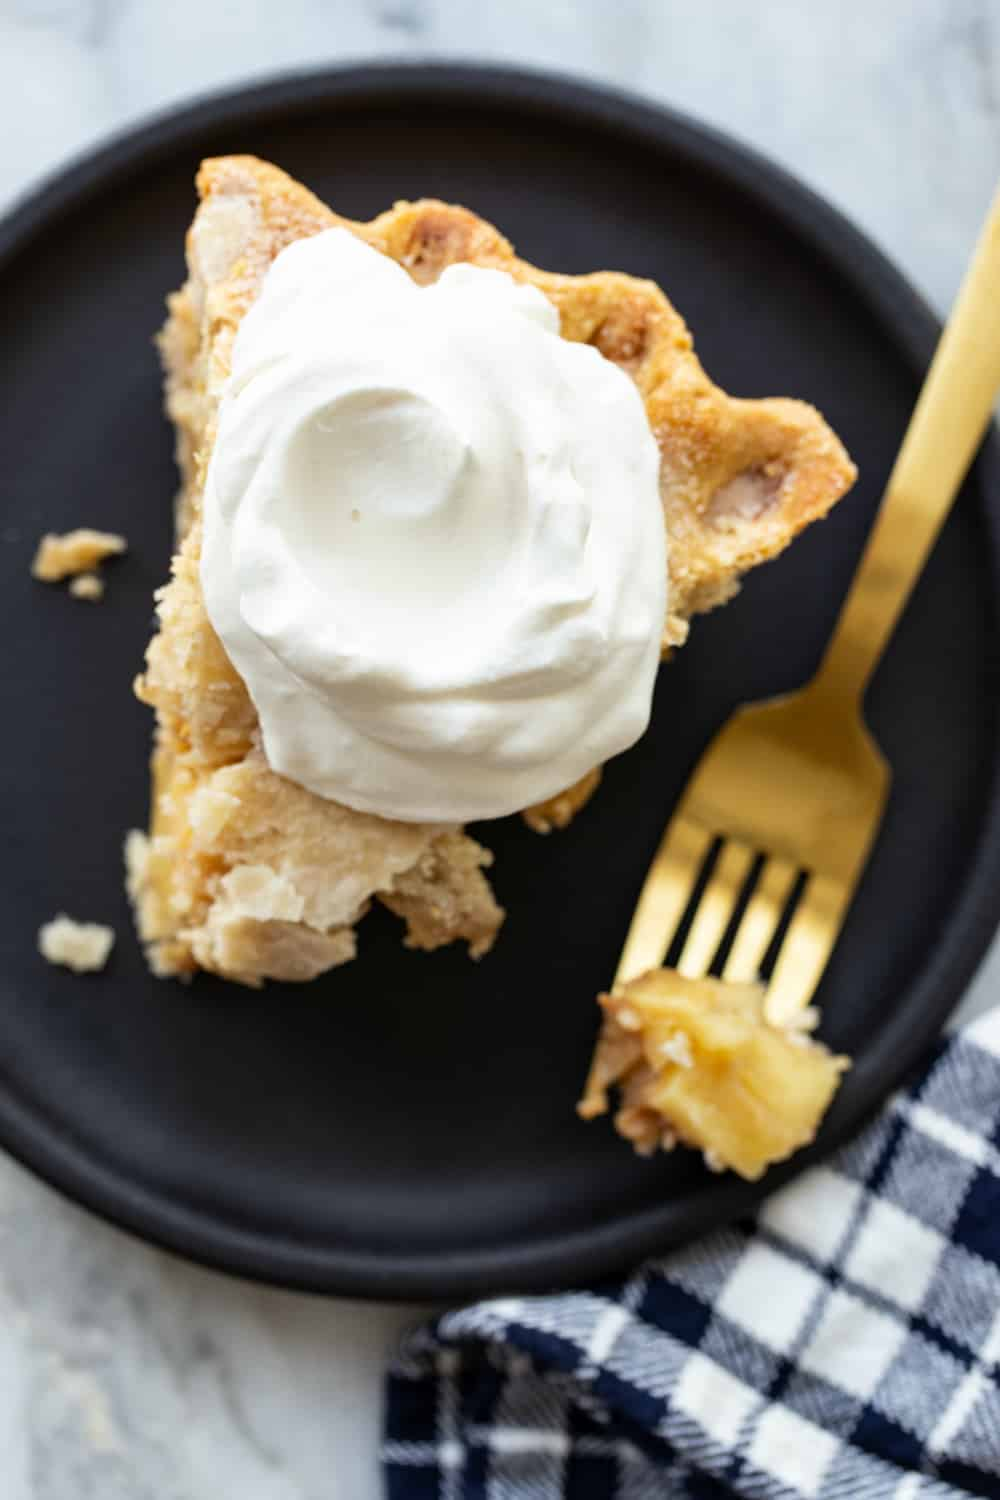 Slice of apple pie on a black plate, topped with softly whipped cream